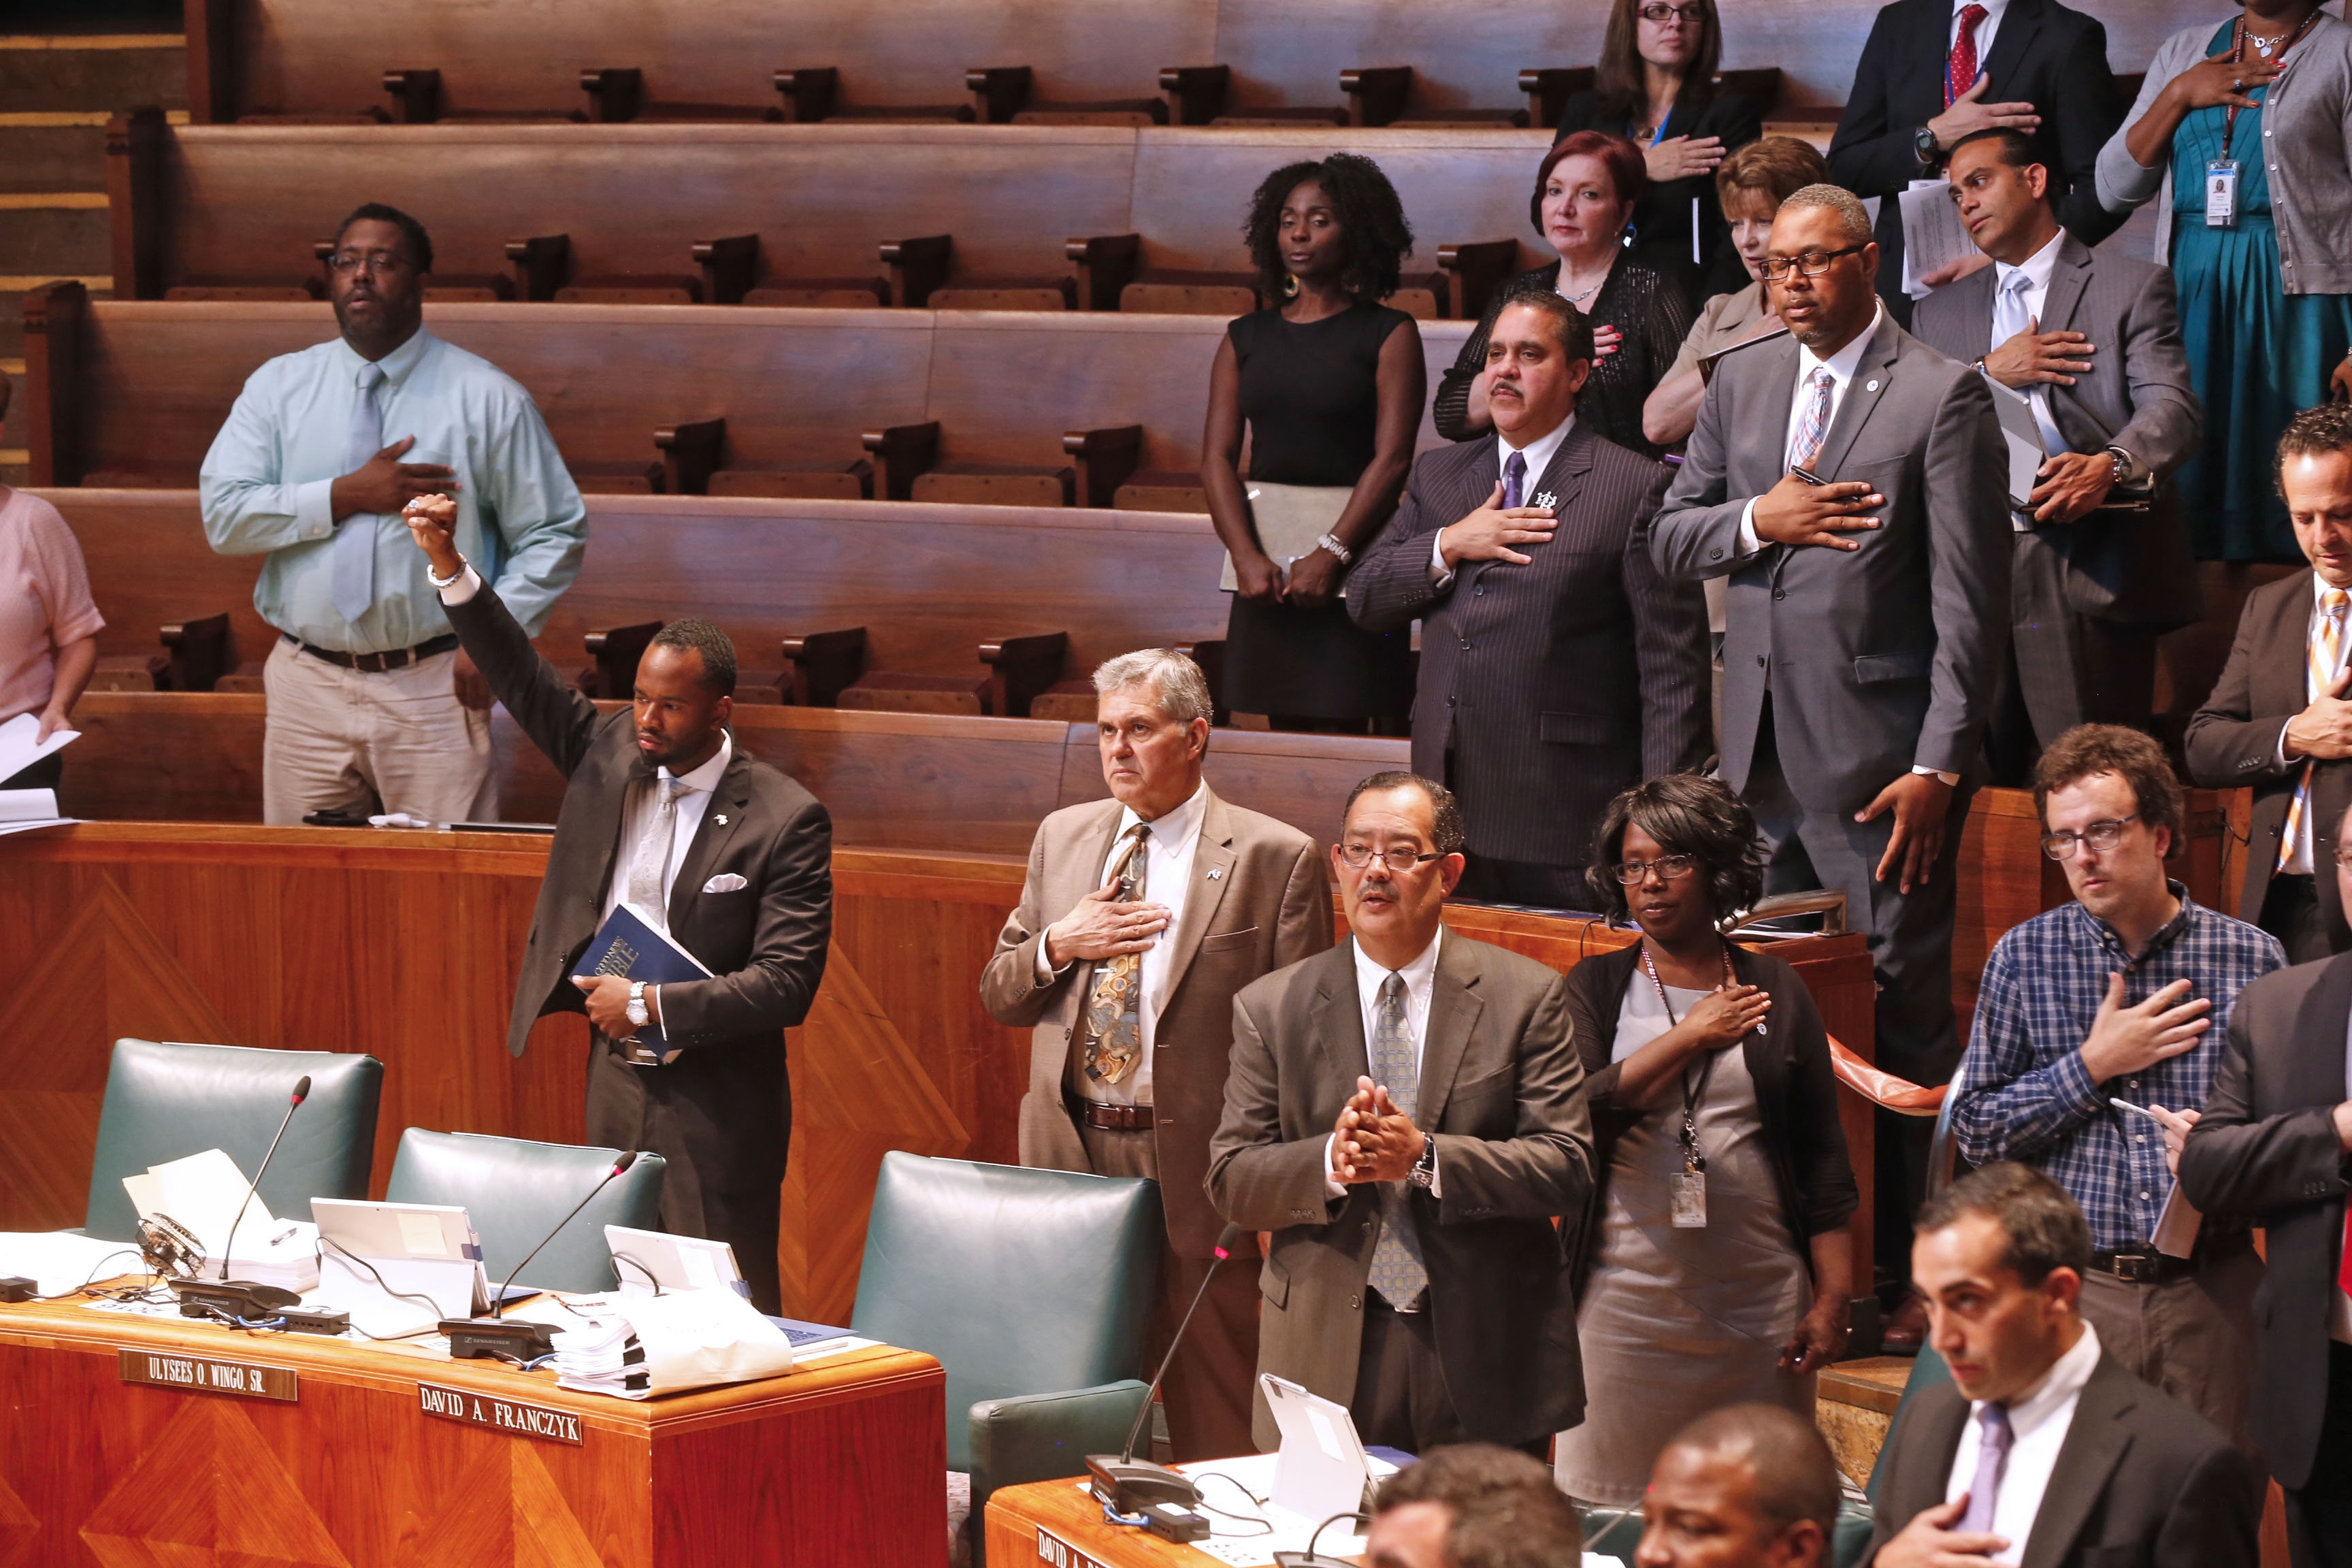 Buffalo Common Council Member Ulysees O. Wingo Sr. prays instead of saying Pledge of Allegiance on Tuesday.